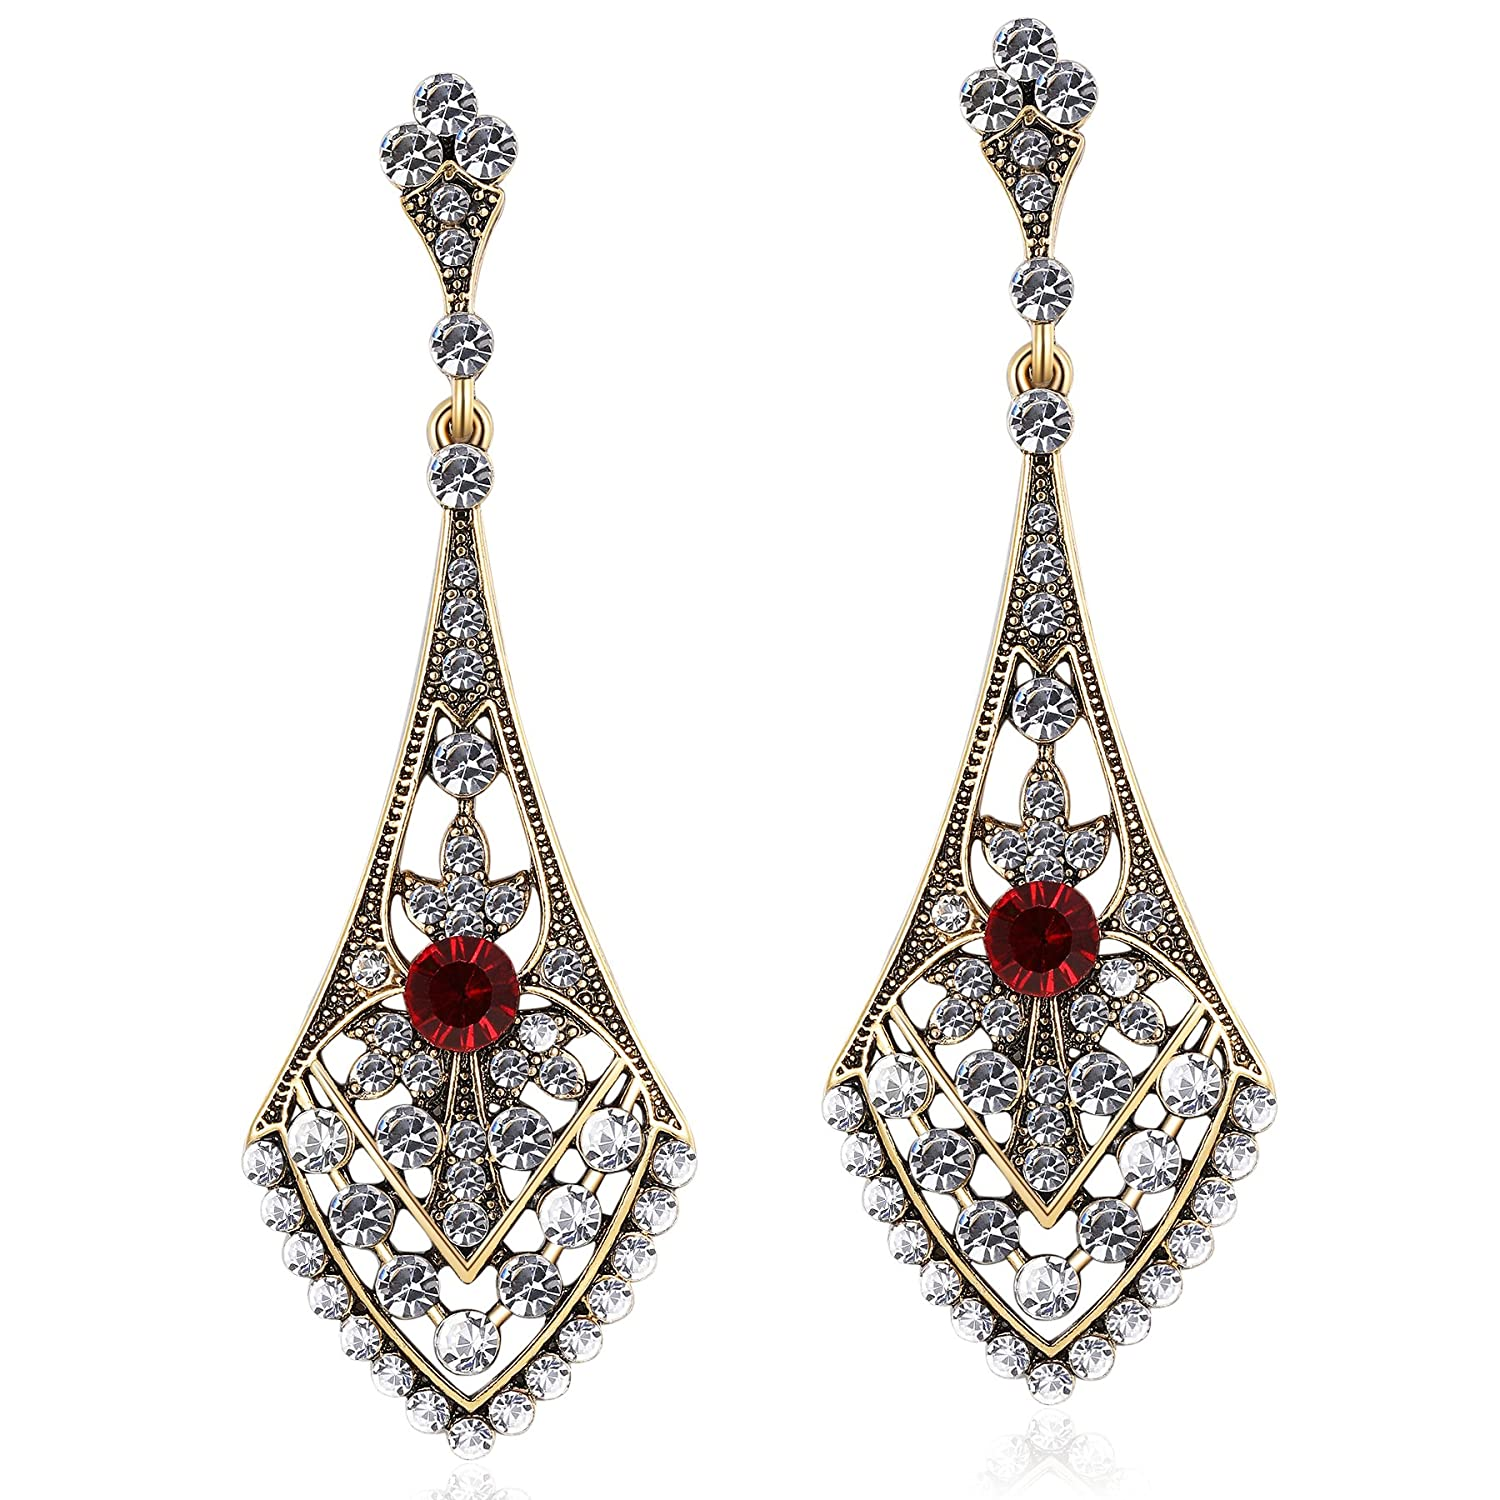 58b2a42c5 Amazon.com: BABEYOND 1920s Flapper Earrings Roaring 20s Great Gatsby  Crystal Rhinestone Earrings Vintage 20s Flapper Gatsby Costume Accessories  (Style ...